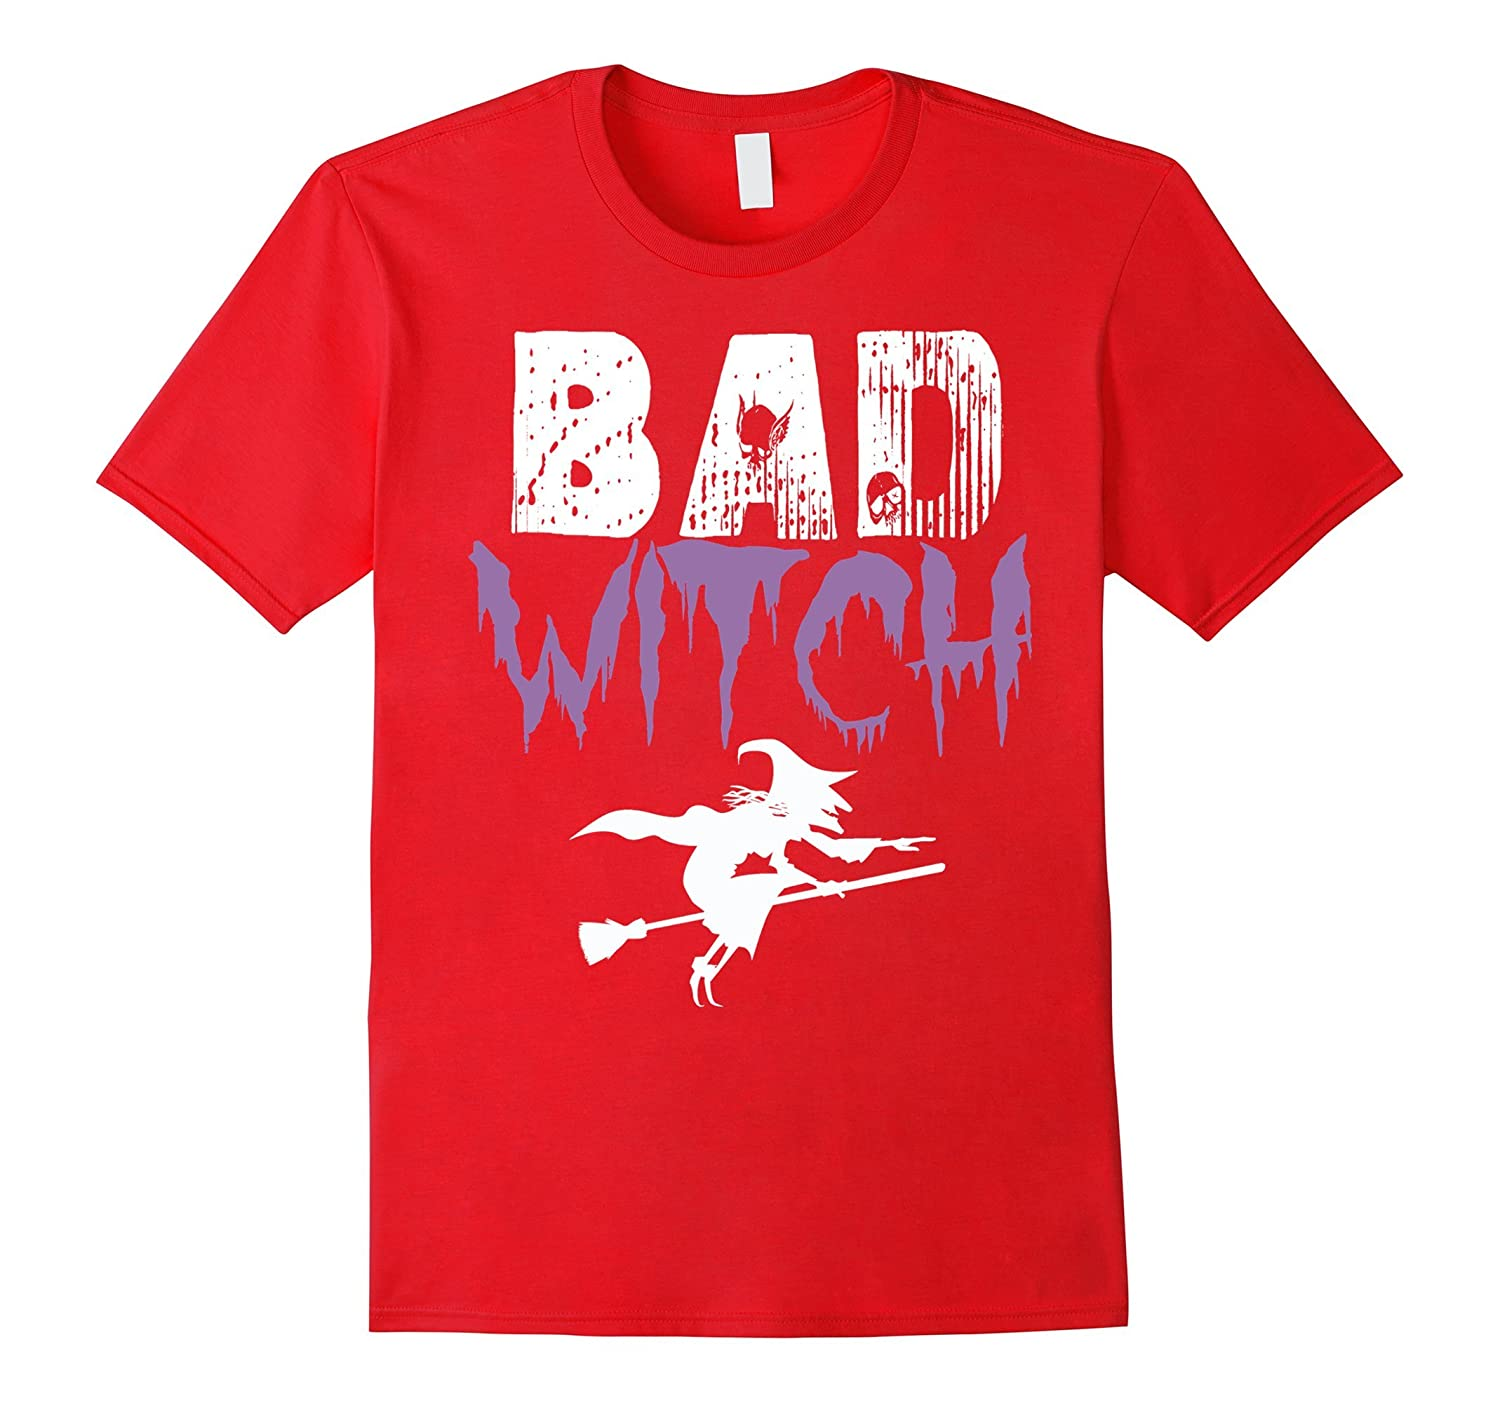 Bad Witch Shirt Funny Halloween Womens Gift Idea T-Shirt-T-Shirt